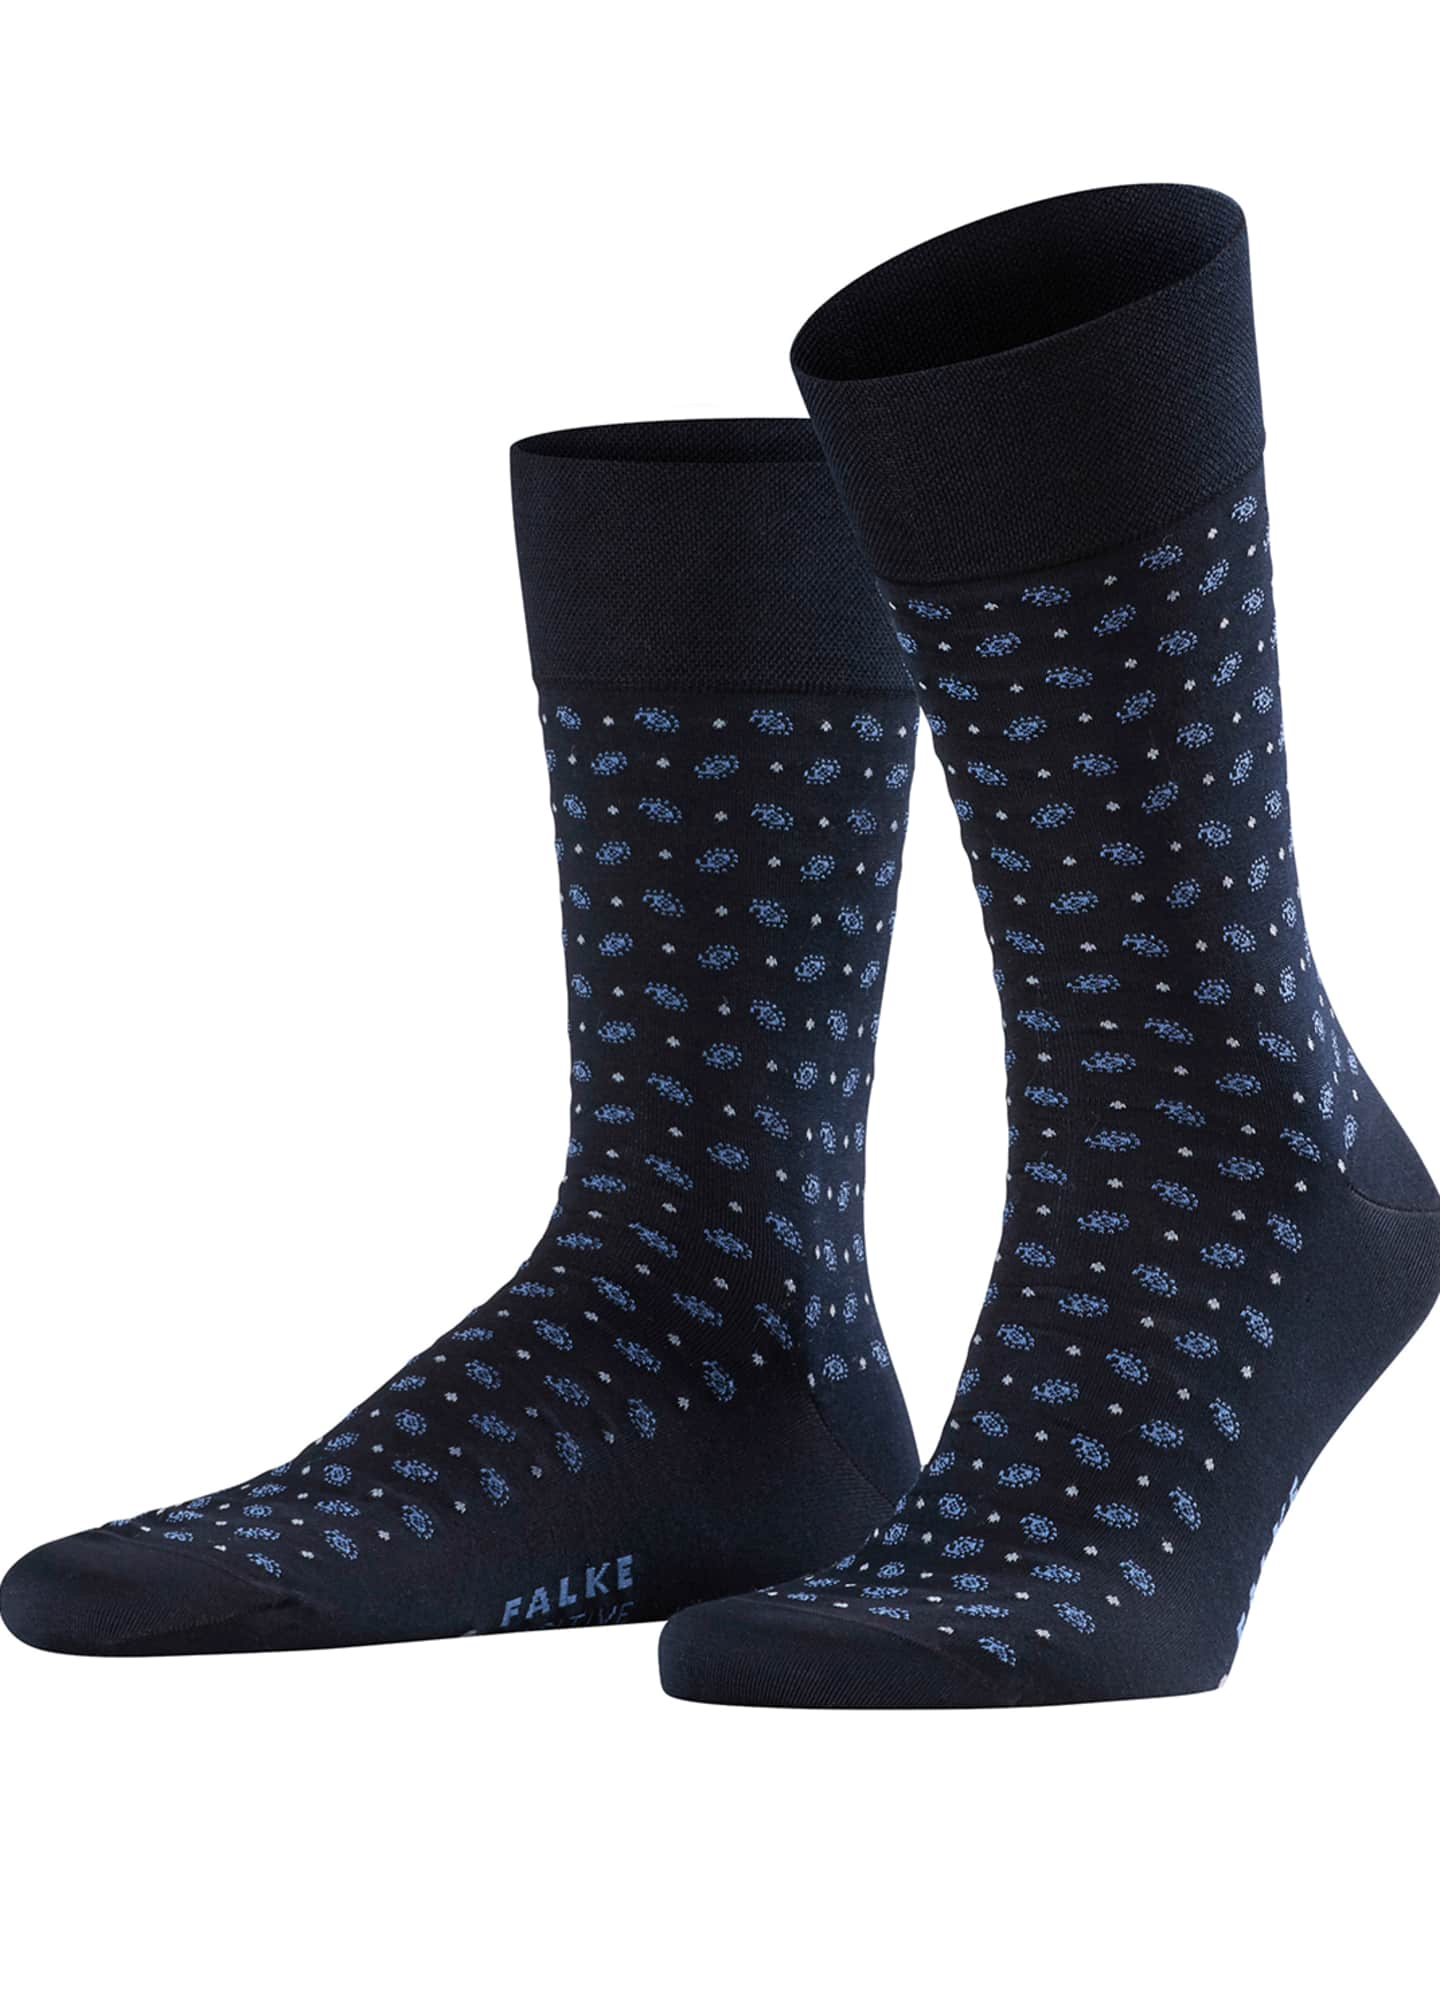 Falke Men's Jabot Dot-Pattern Socks